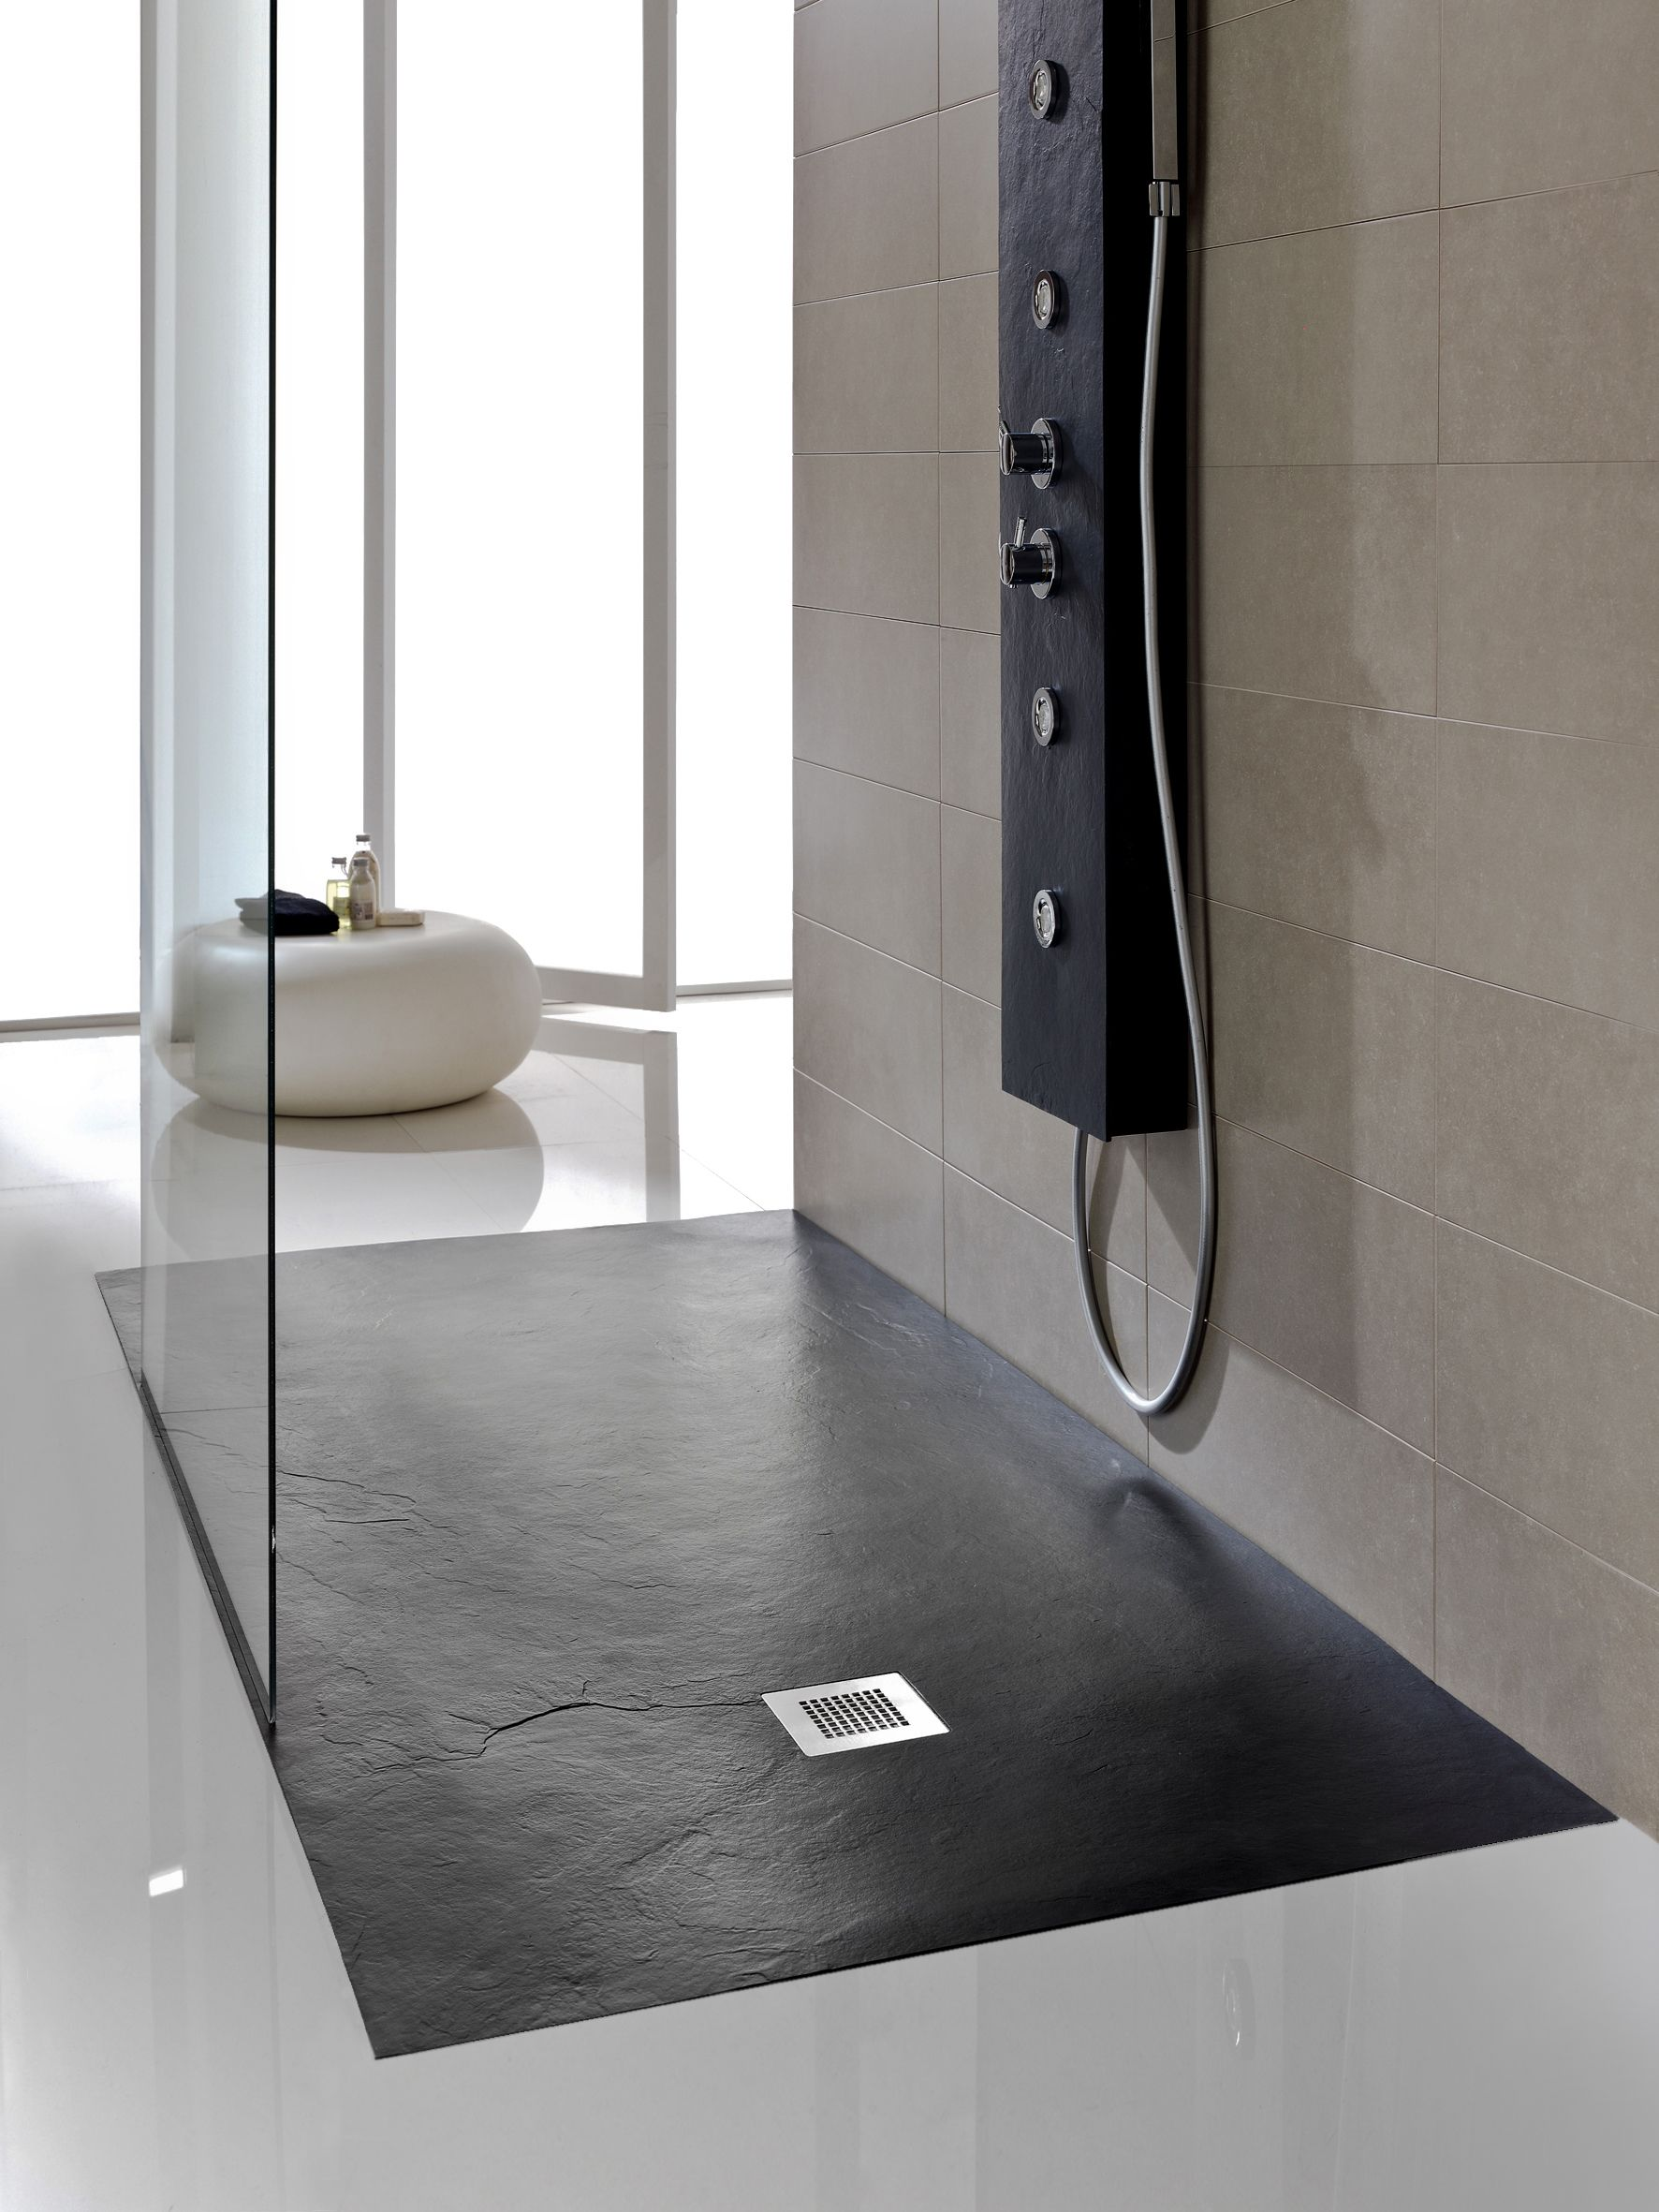 Our Softstone Aqua Cusion Floor Makes For A Luxurious Wet Room Showering Experience Shower Tray Modern Bathroom Accessible Bathroom Design